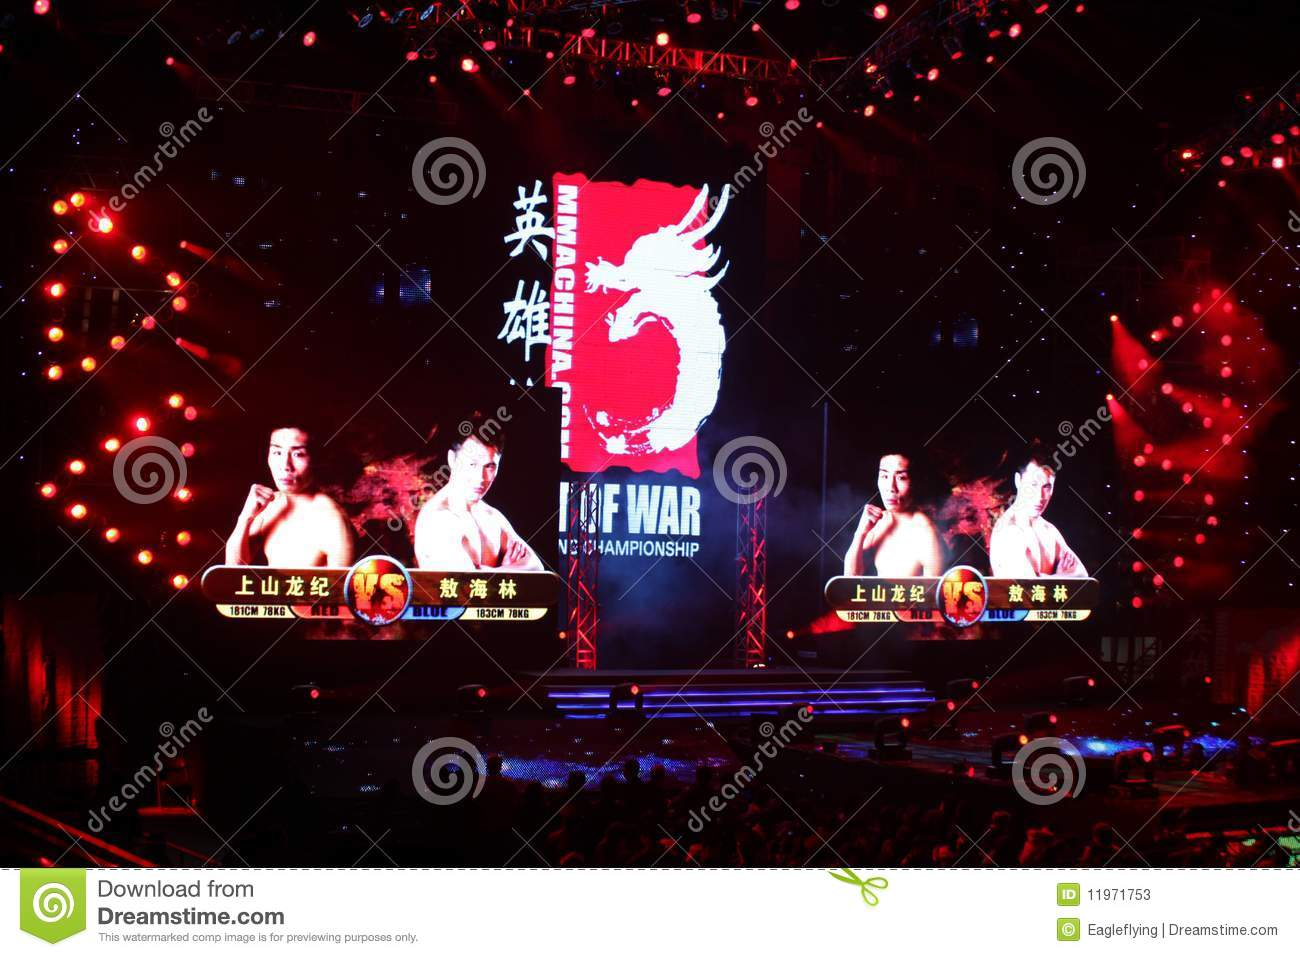 Art of War Fighting Championship